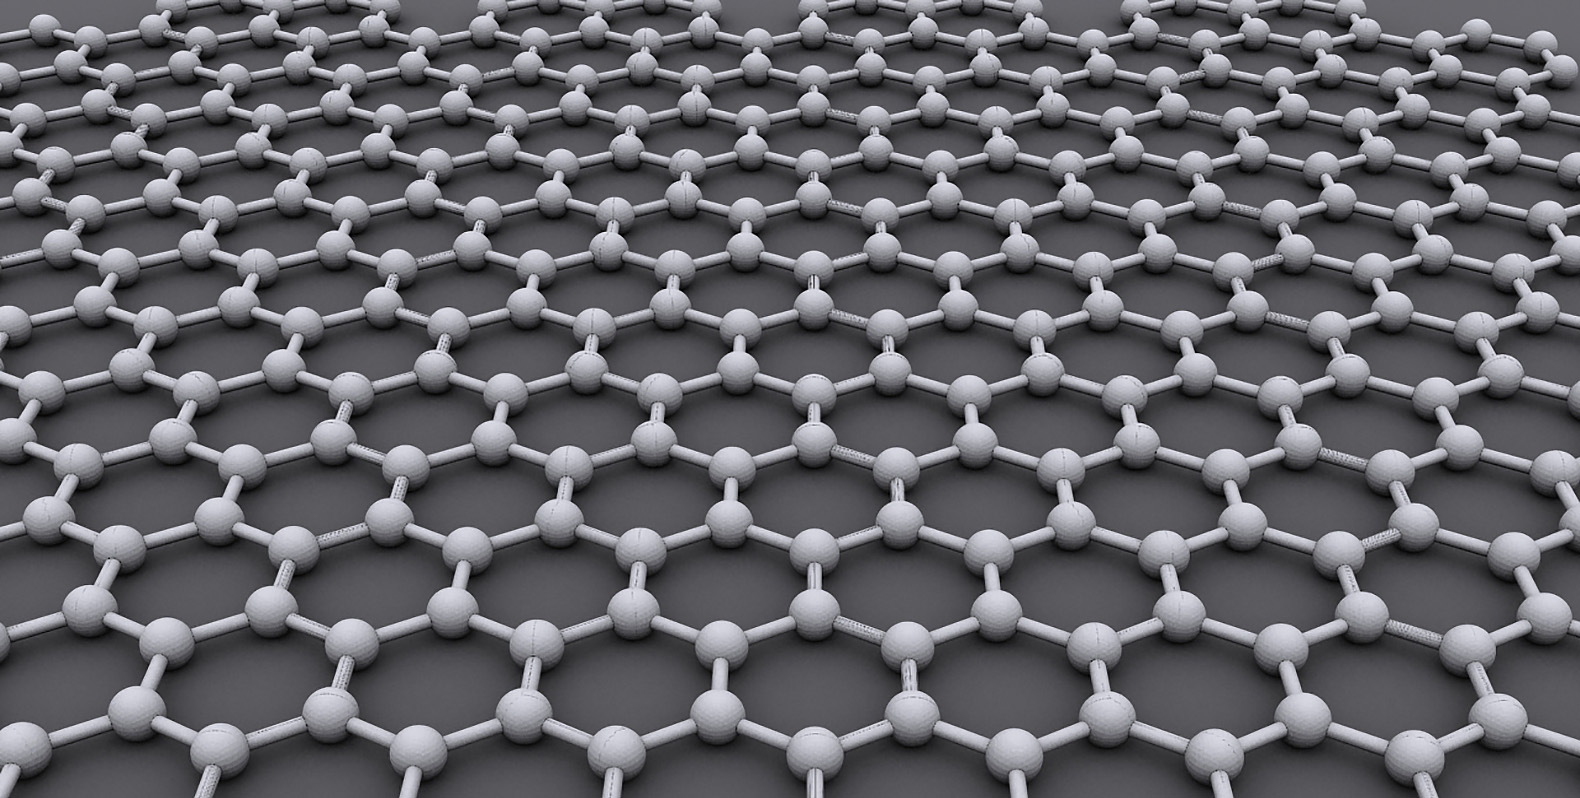 Six amazing uses for the wonder material graphene